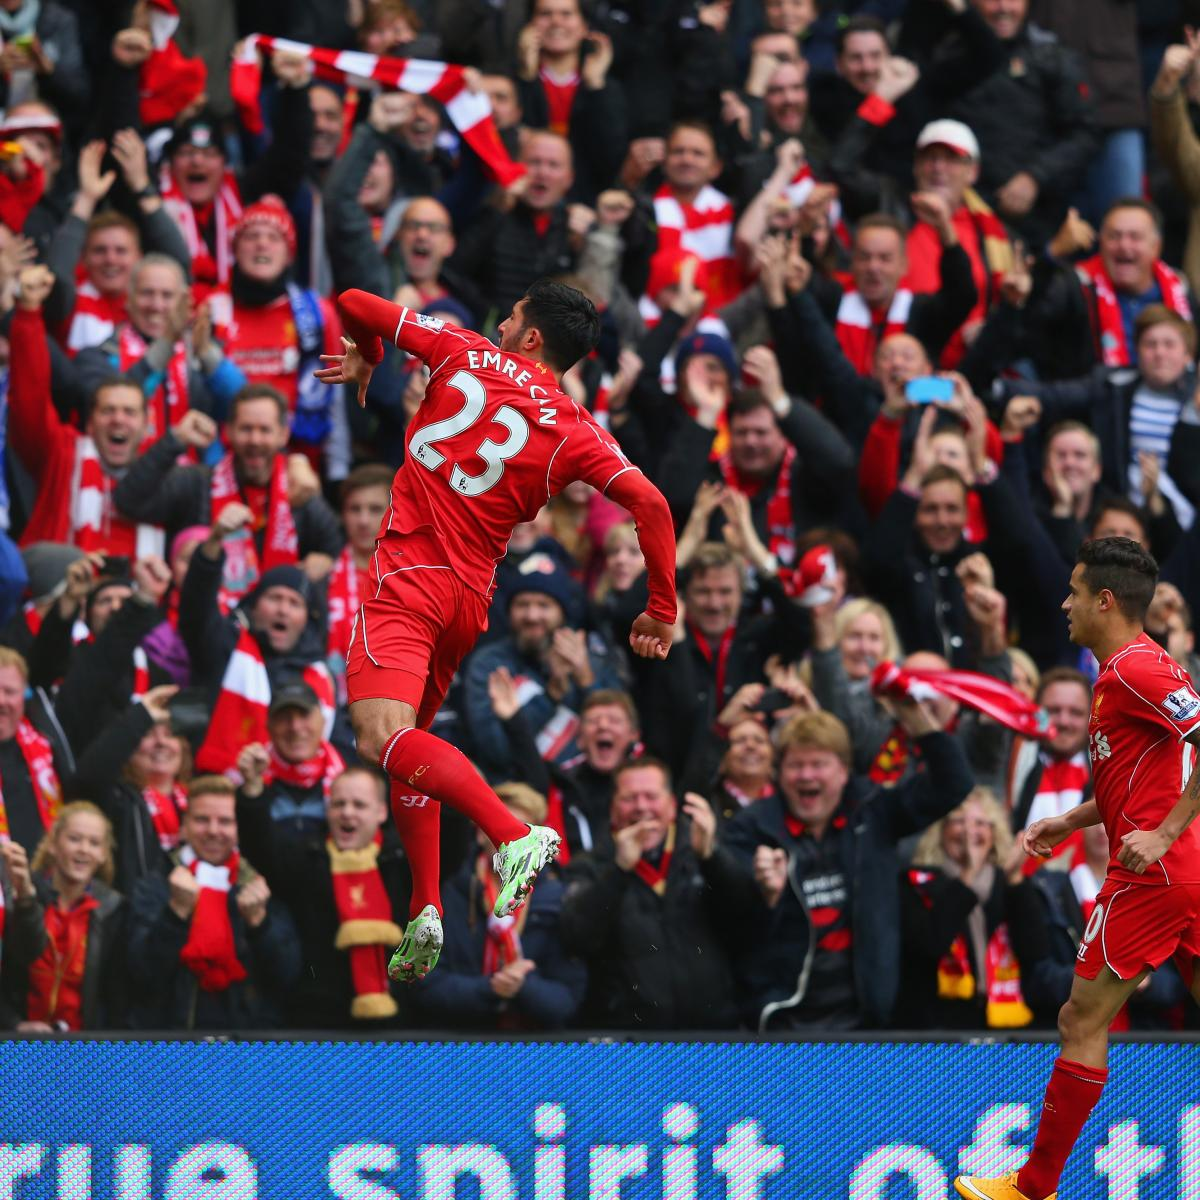 Liverpool Vs Chelsea: Liverpool Vs. Chelsea: Emre Can Scores But Gary Cahill And